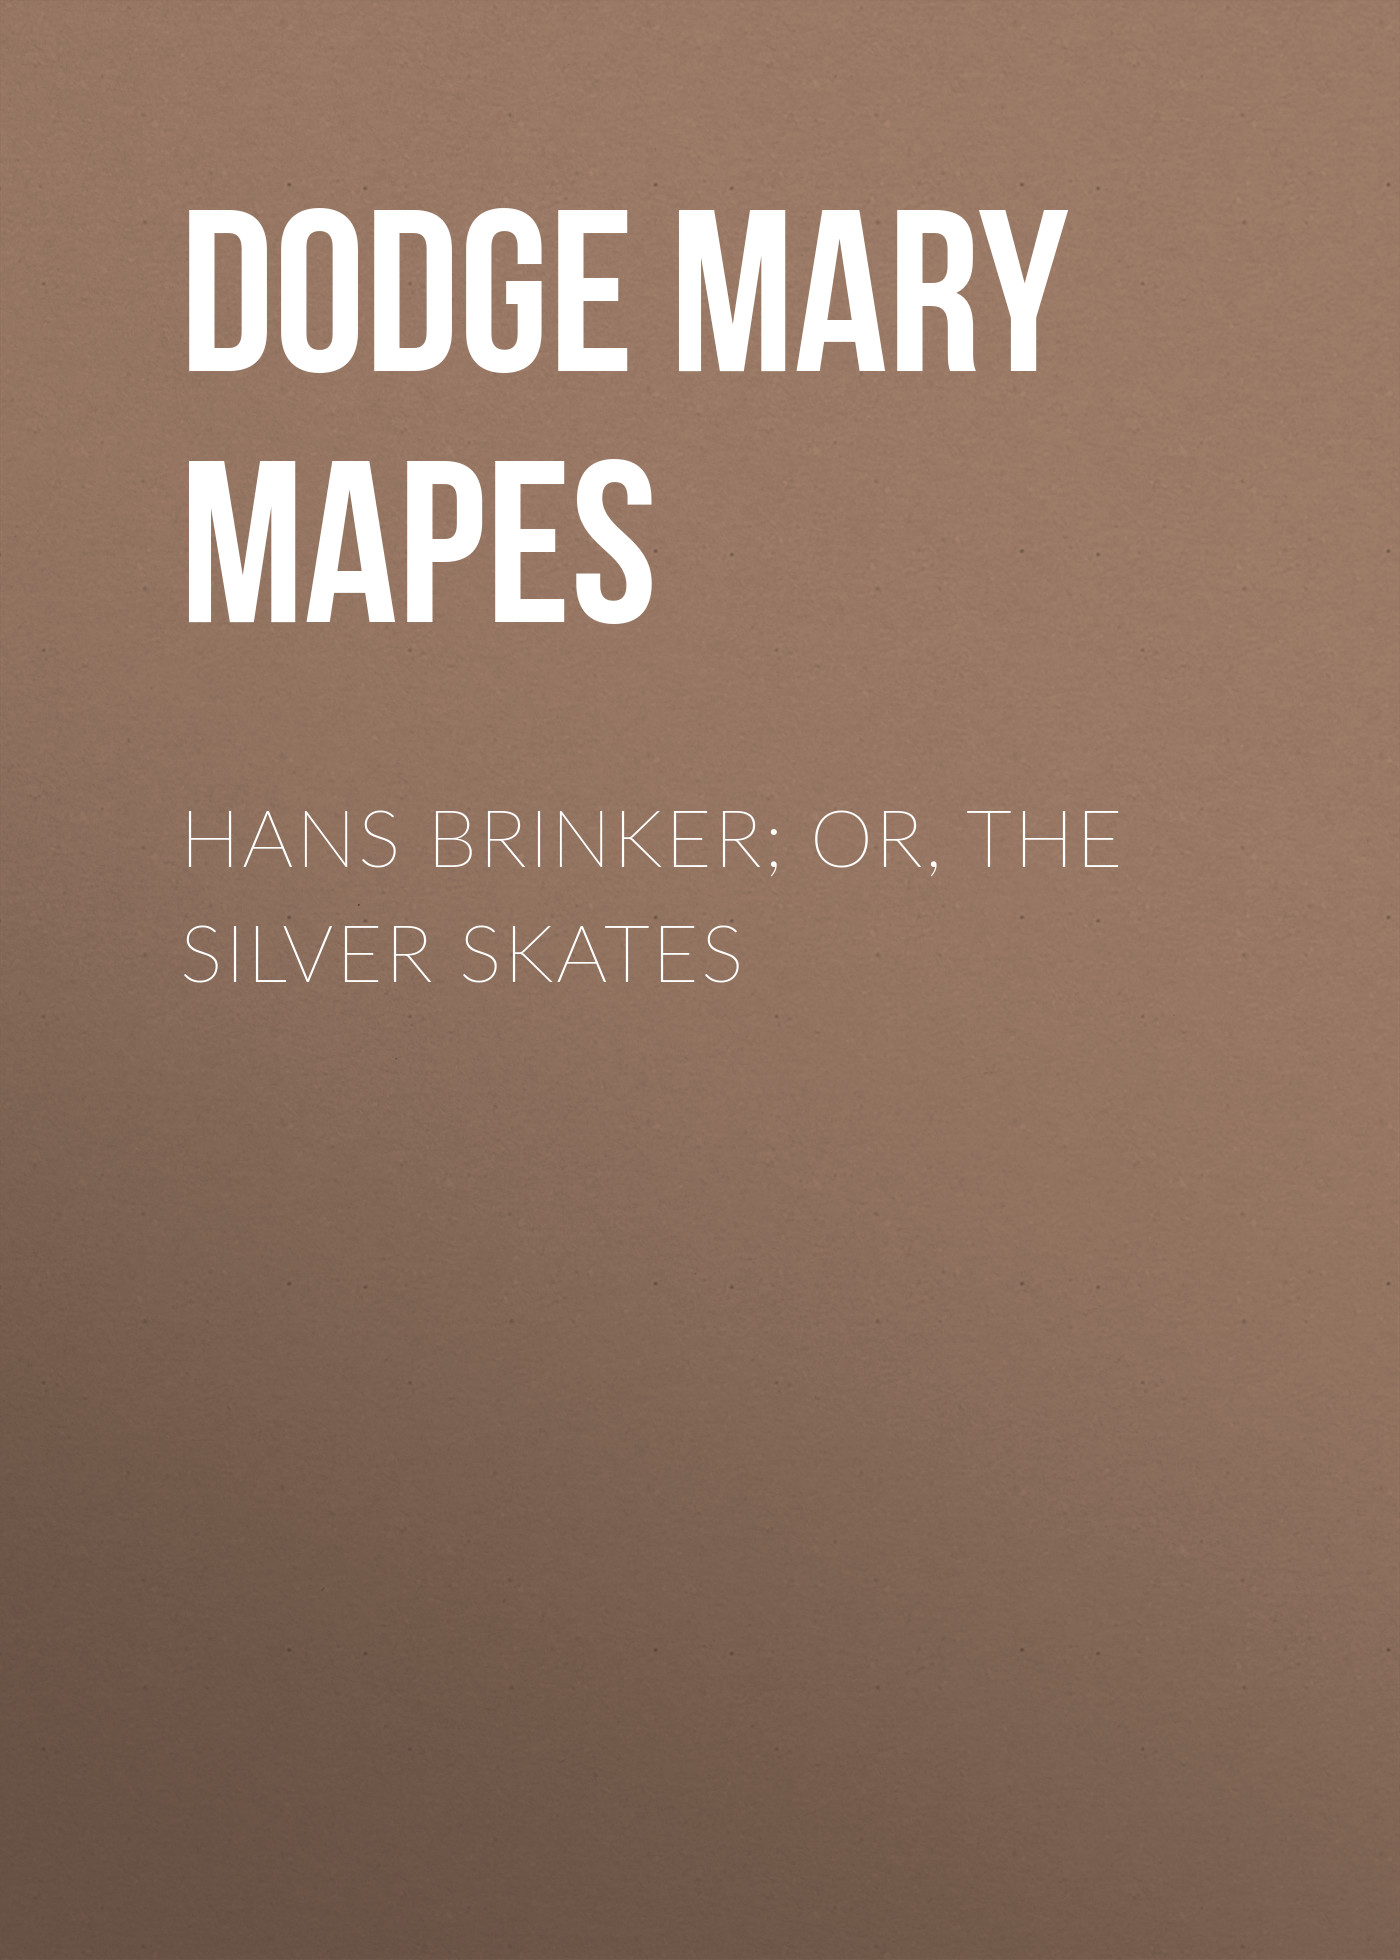 Dodge Mary Mapes Hans Brinker; Or, The Silver Skates professionales road show rx4 roller skates four wheel skates inline skates ice hockey skates for adulto